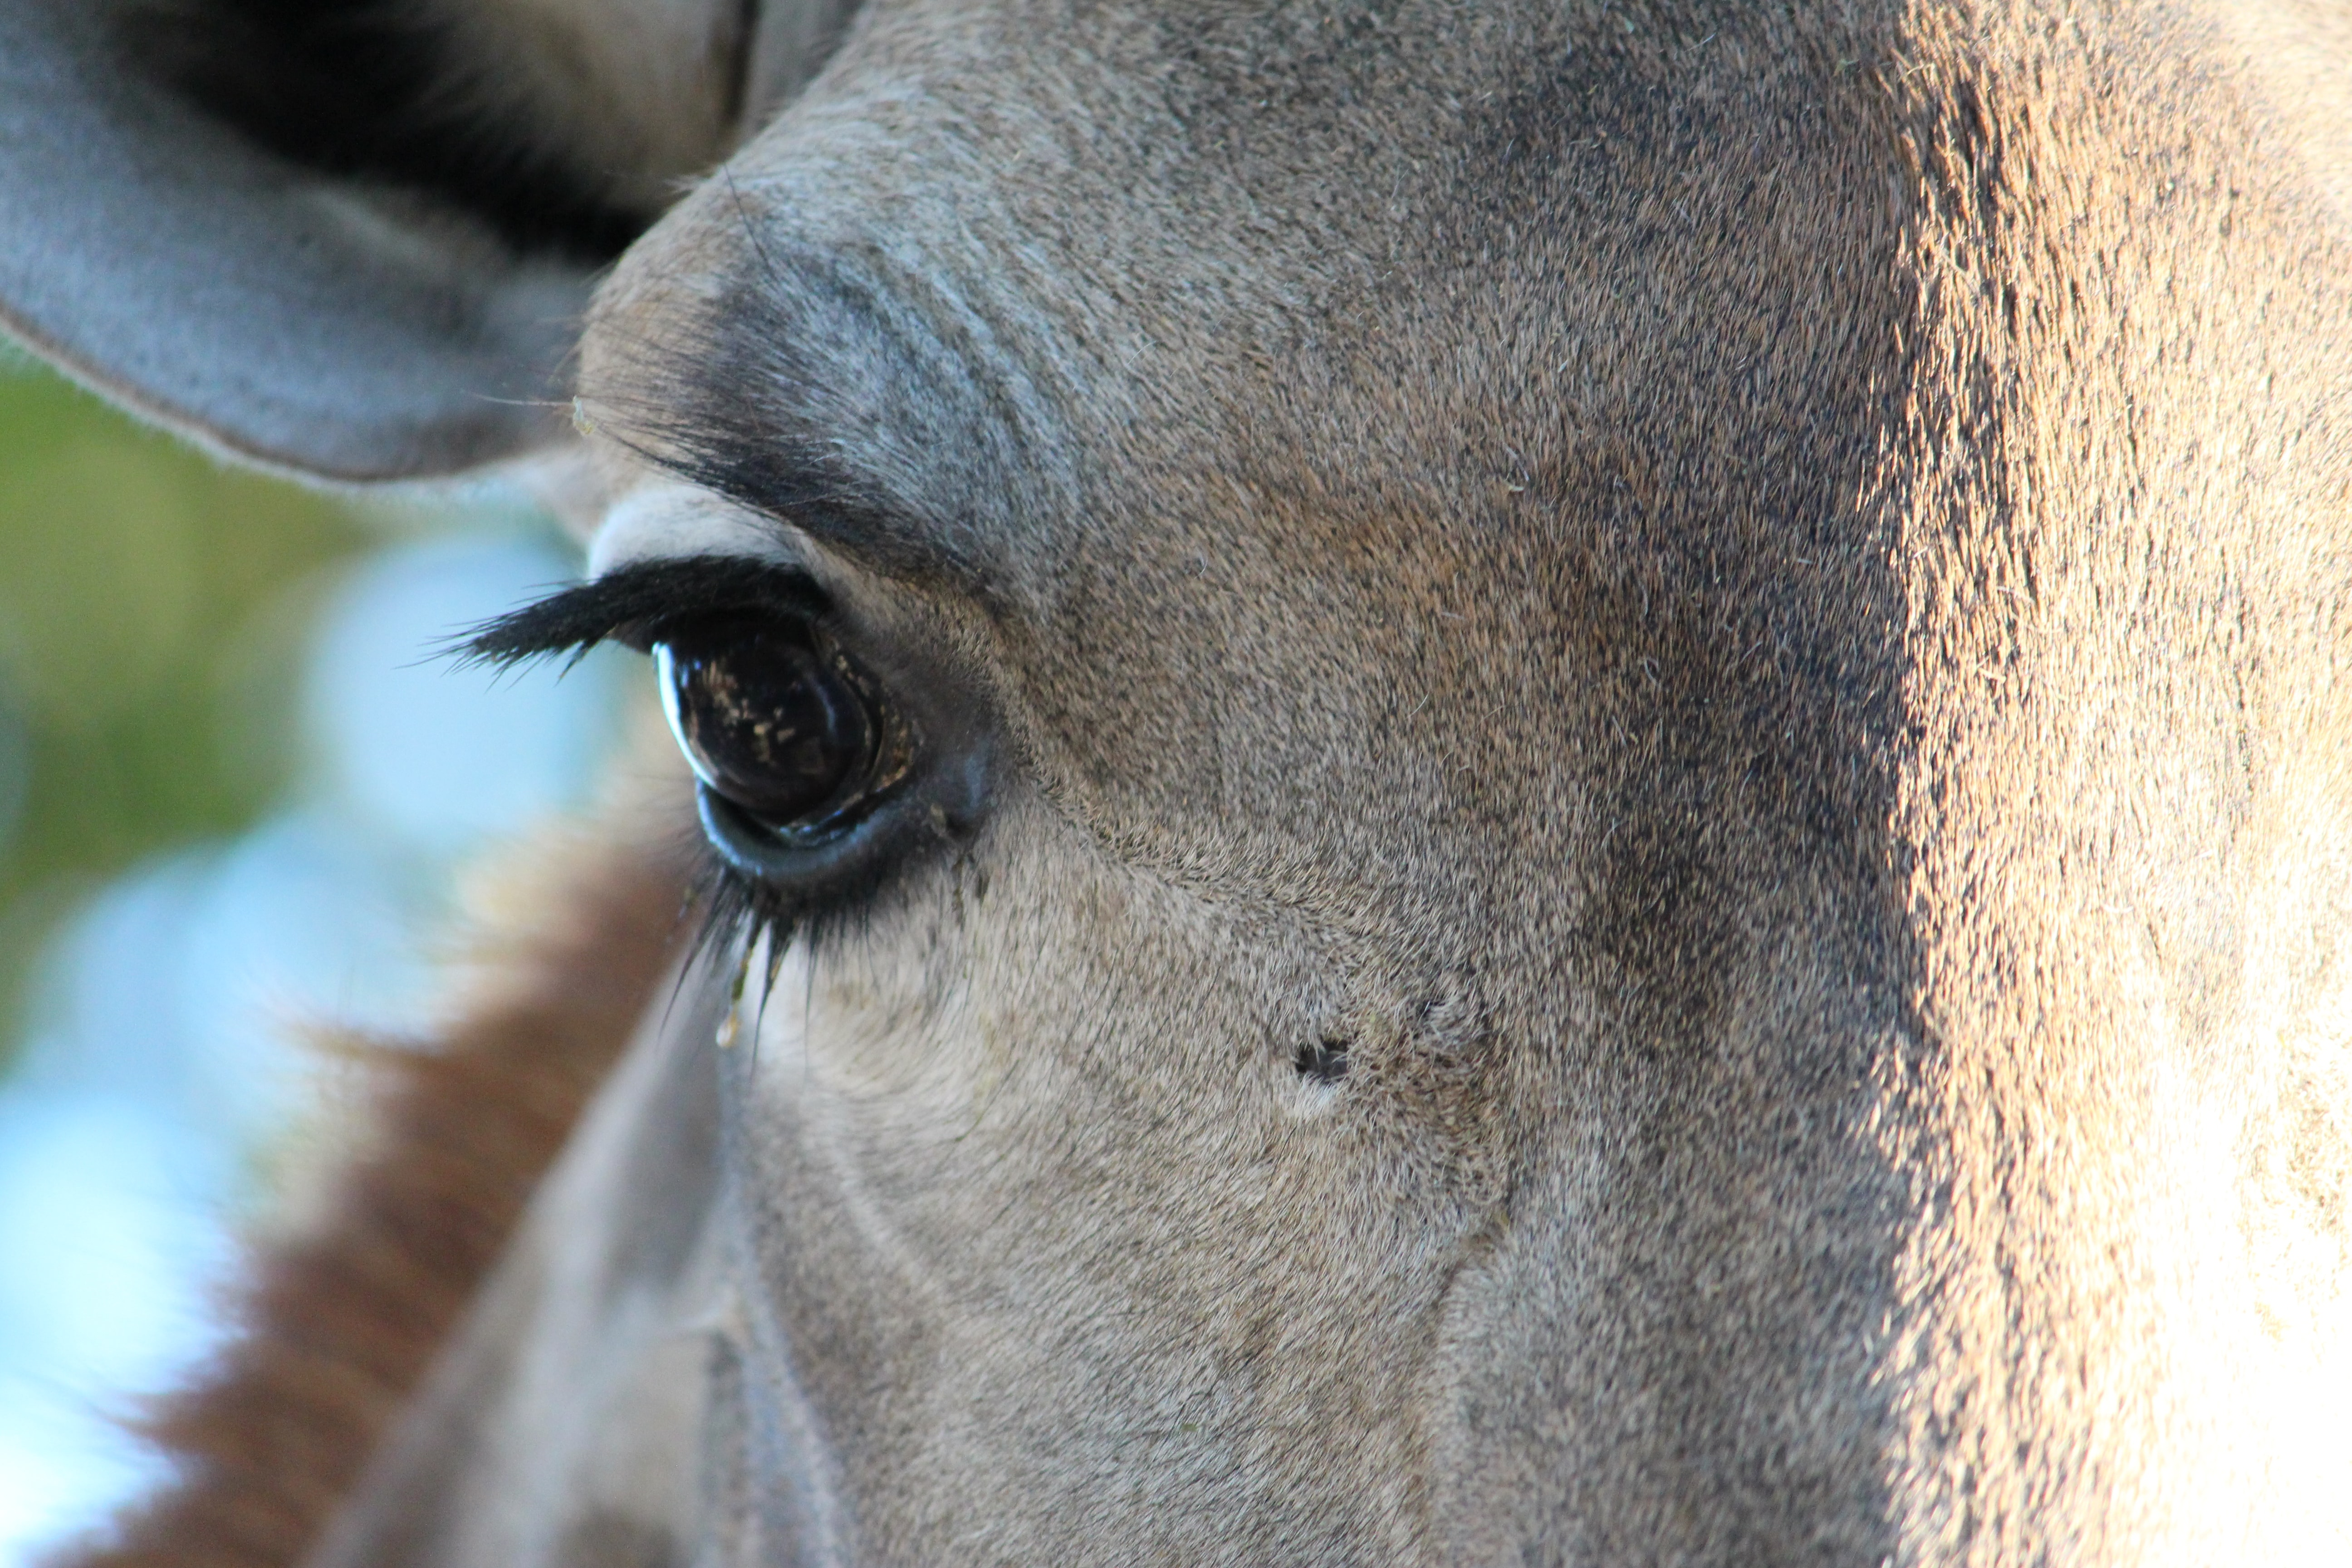 close up photo of horse right eye